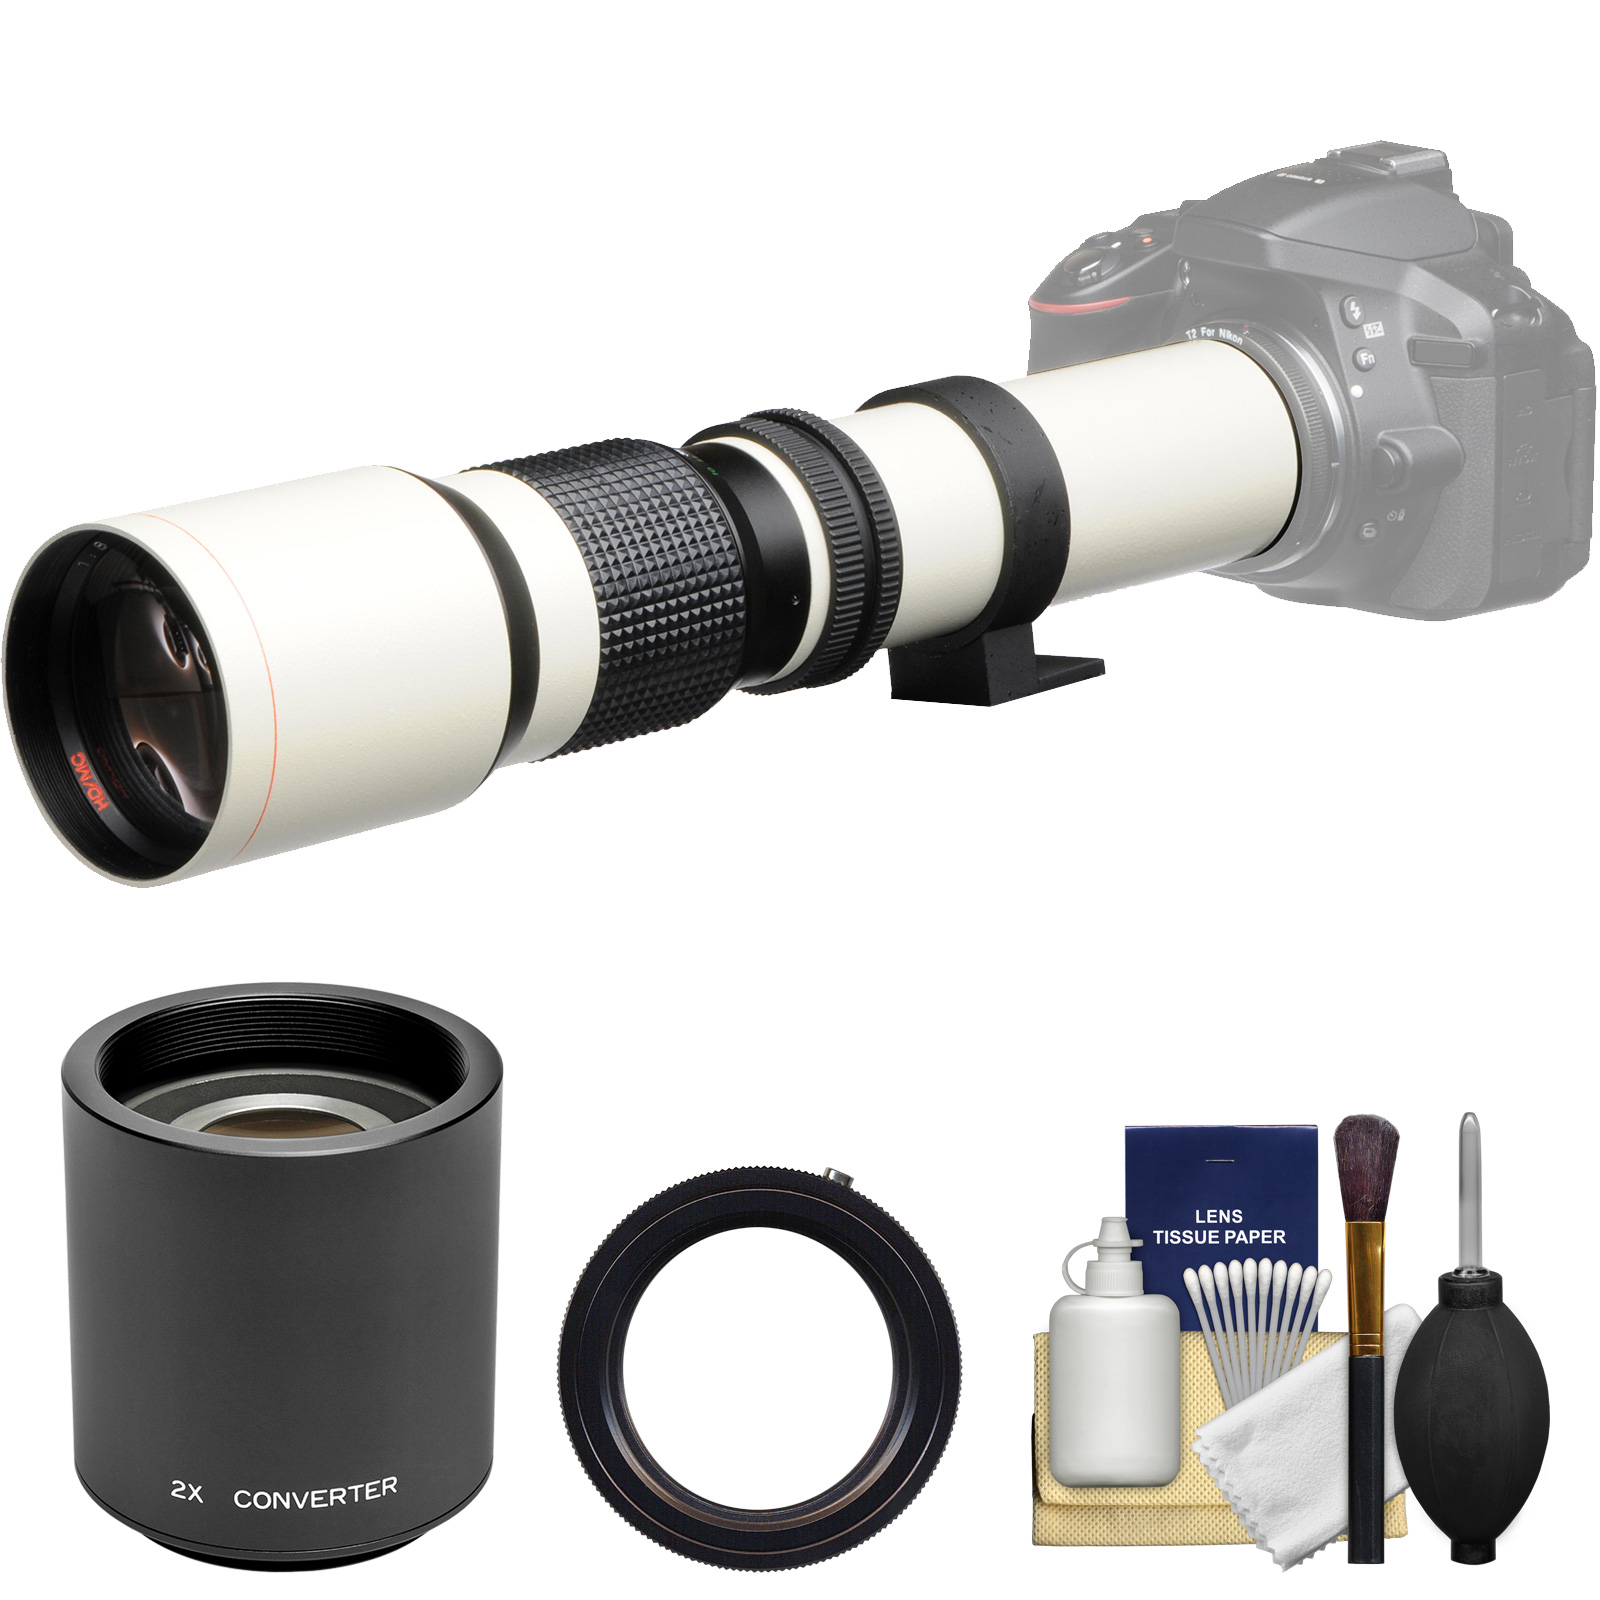 Vivitar 500mm f/8.0 Telephoto Lens (T Mount) (White) with 2x Teleconverter (=1000mm) + Kit for Canon EOS 6D, 70D, 7D, 5DS, 5D Mark II III, Rebel T5, T5i, T6i, T6s, SL1 Camera